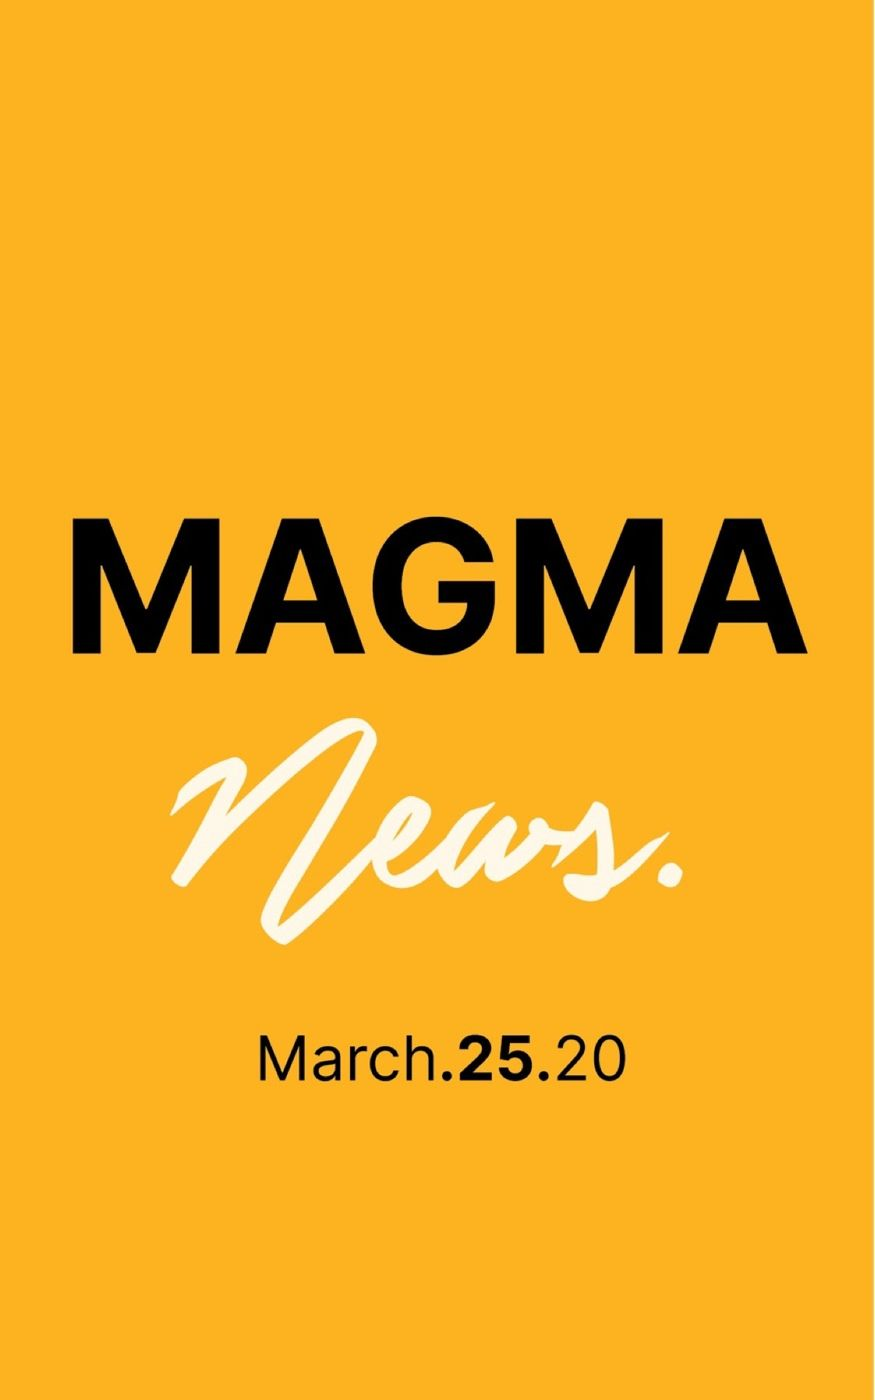 Magma News | March 25, 2020  -Today was the Deadliest Day for U.S in Coronavirus Battle. -Senate Rushes to approve $2.2 trillion bill.  - Biden has talked with Obama about possible VP pick. -McDonald's temporally ends All Day Breakfast Amid Covid-19 Pandemic. -Apple faces delays.   Check back every Monday, Wednesday & Friday